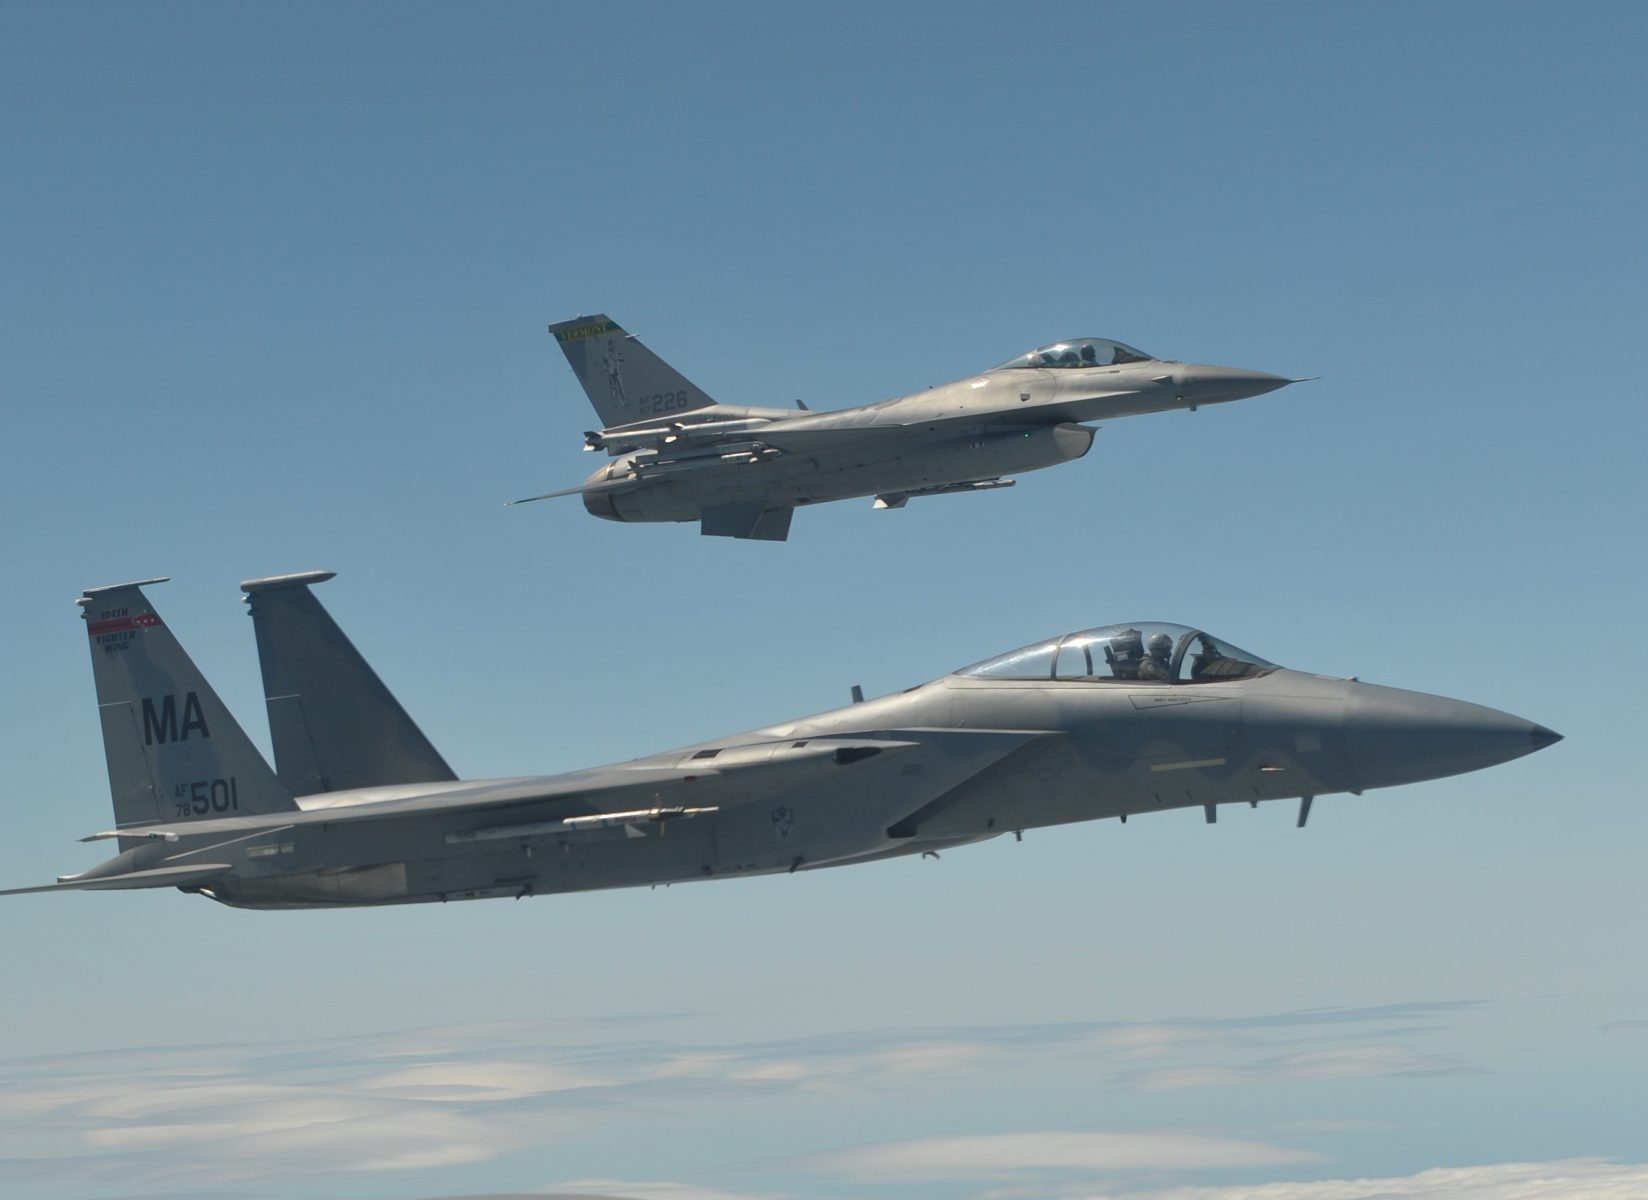 104th Fighter Wing to Conduct Hot Pit Flying Refueling